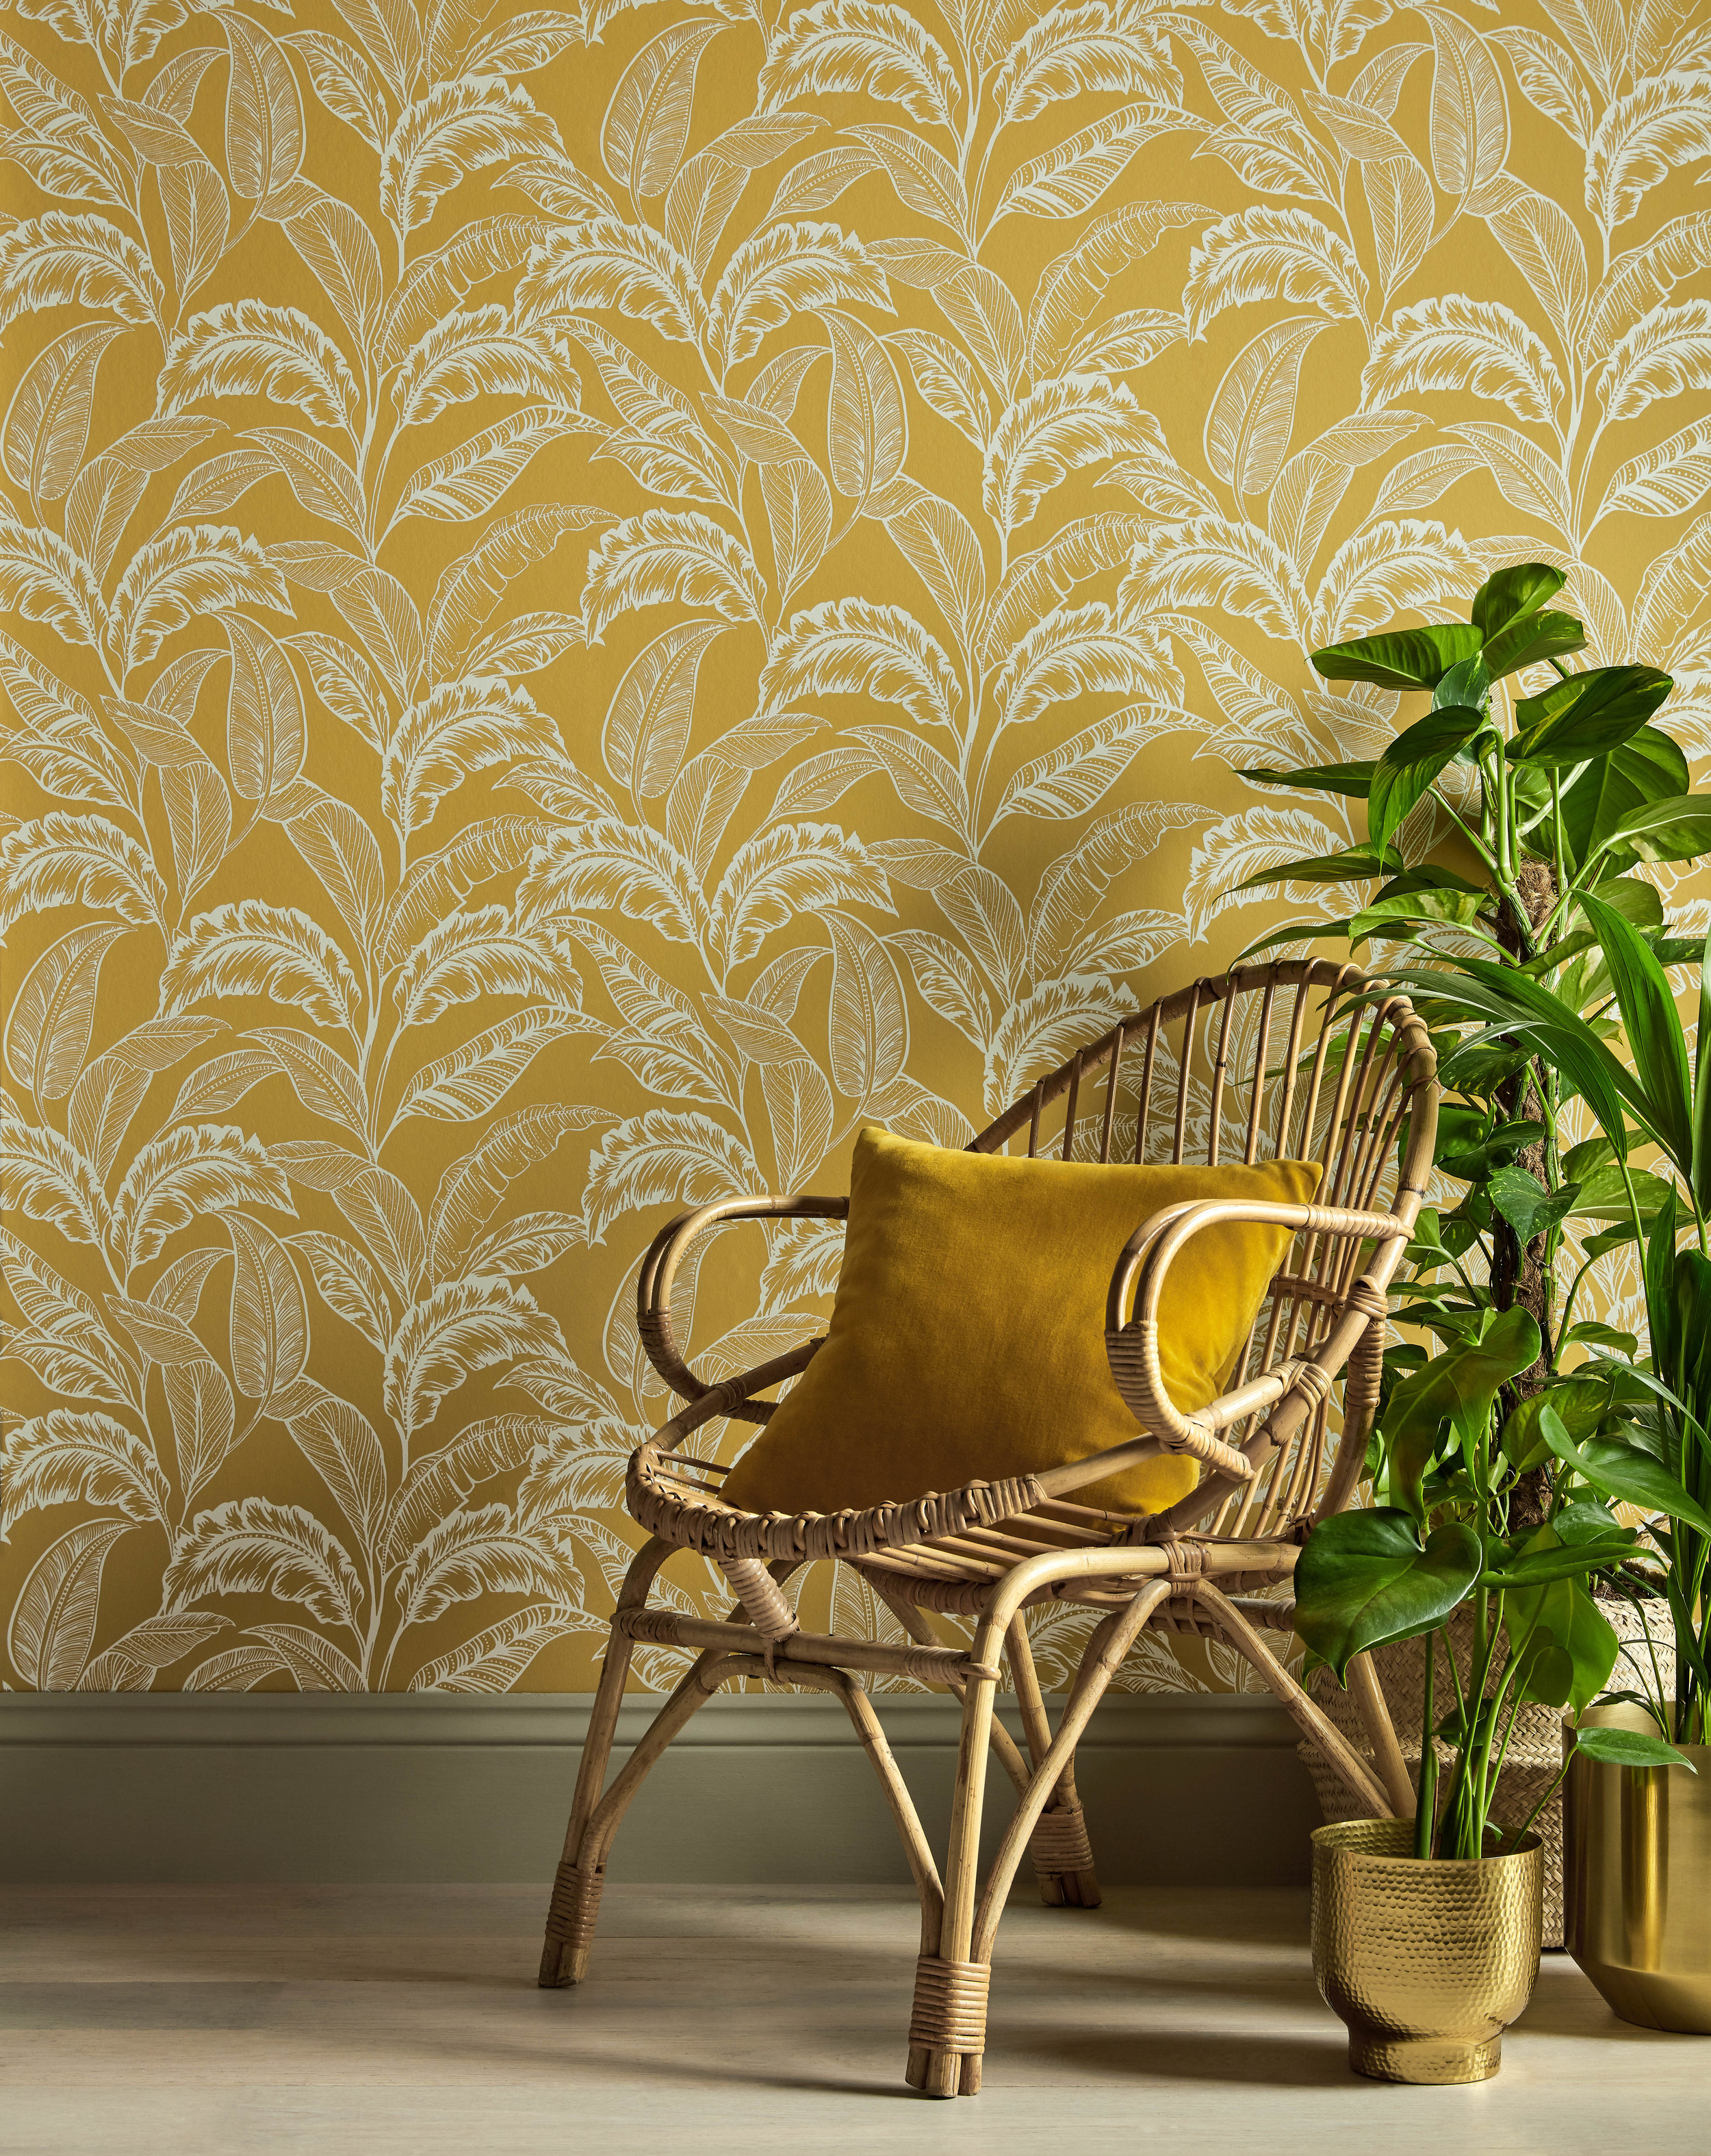 Accessorize Mozambique Wallpaper - Yellow Ochre copy.jpg